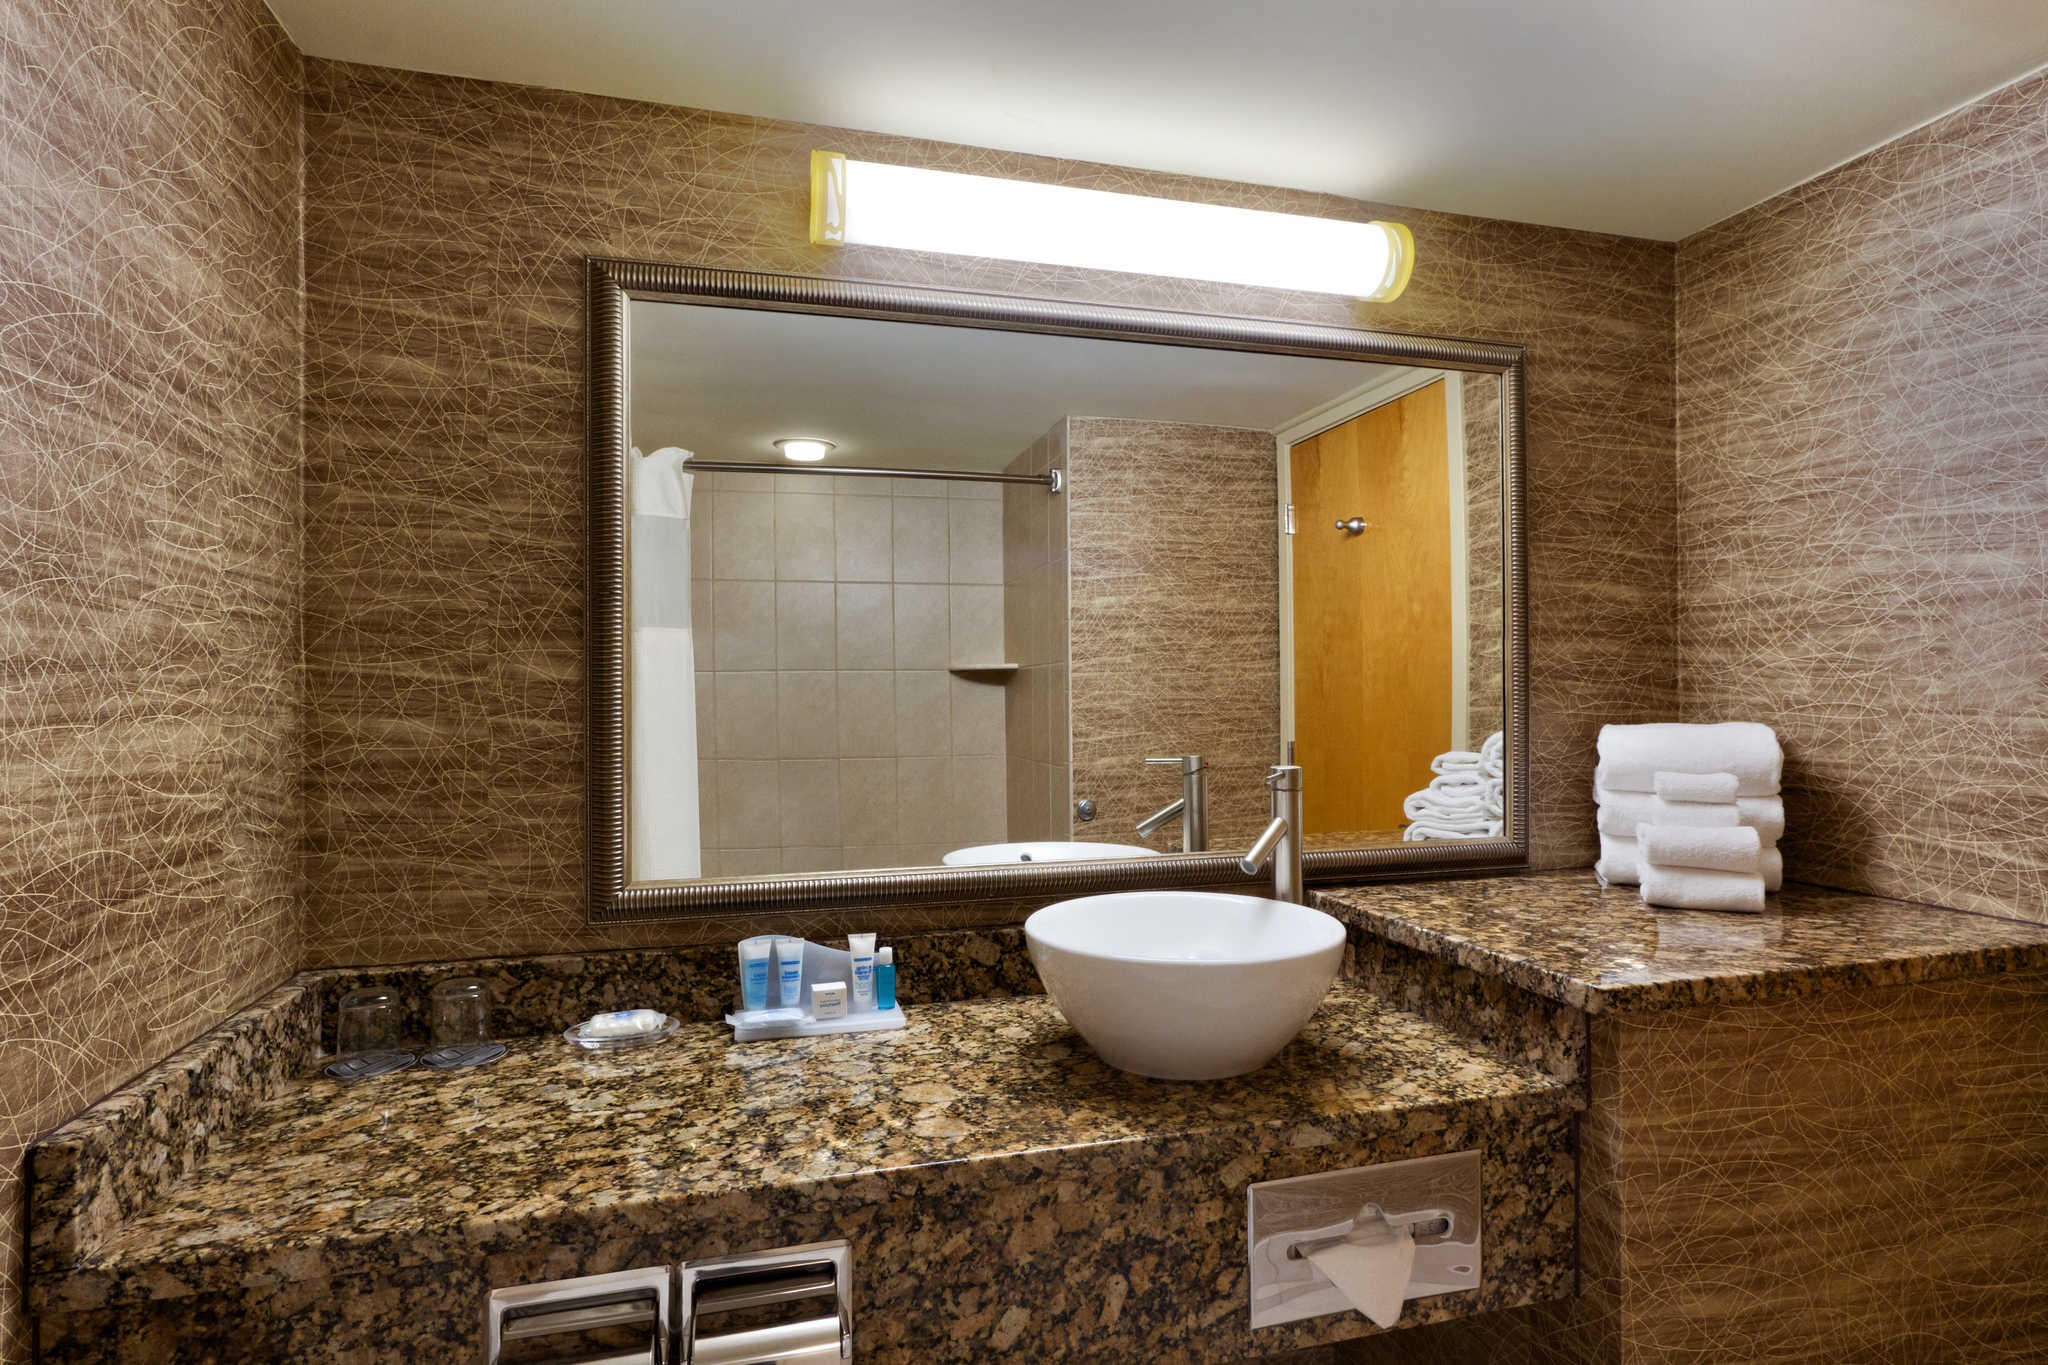 Clarion Hotel image 5